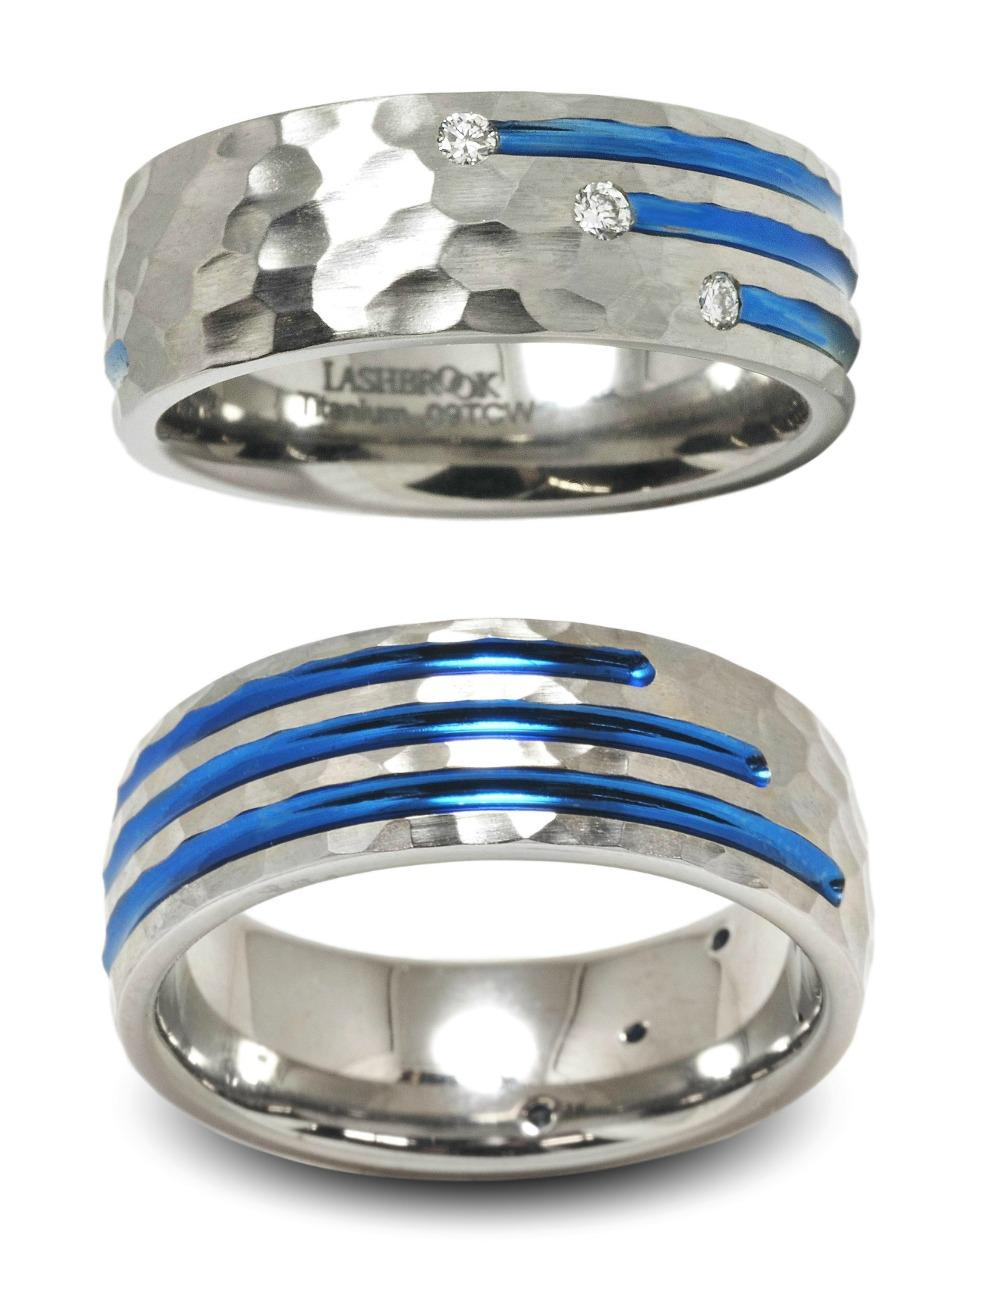 Anodized Titanium and Diamond Wedding Band from Lashbrook Designs